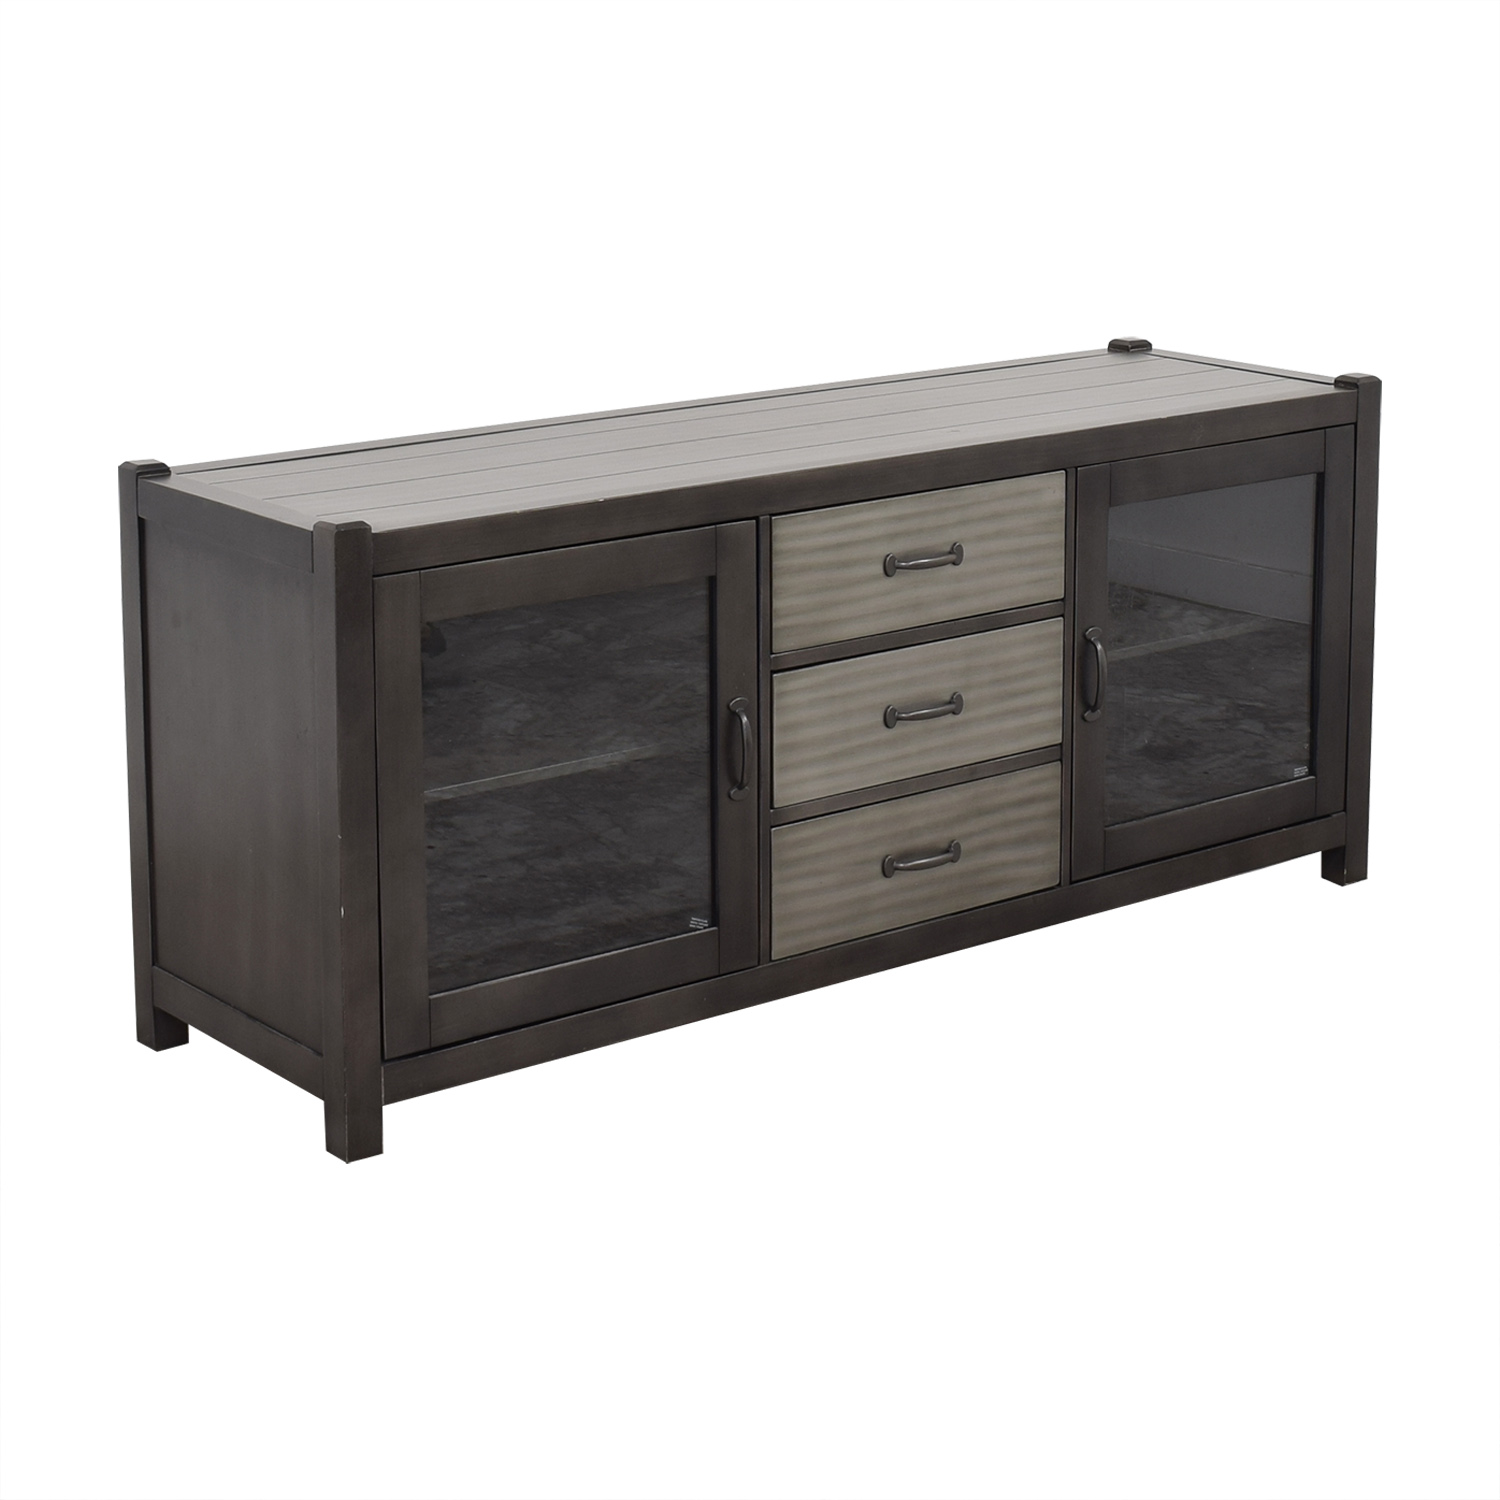 Raymour & Flanigan Raymour & Flanigan Axel TV Console discount